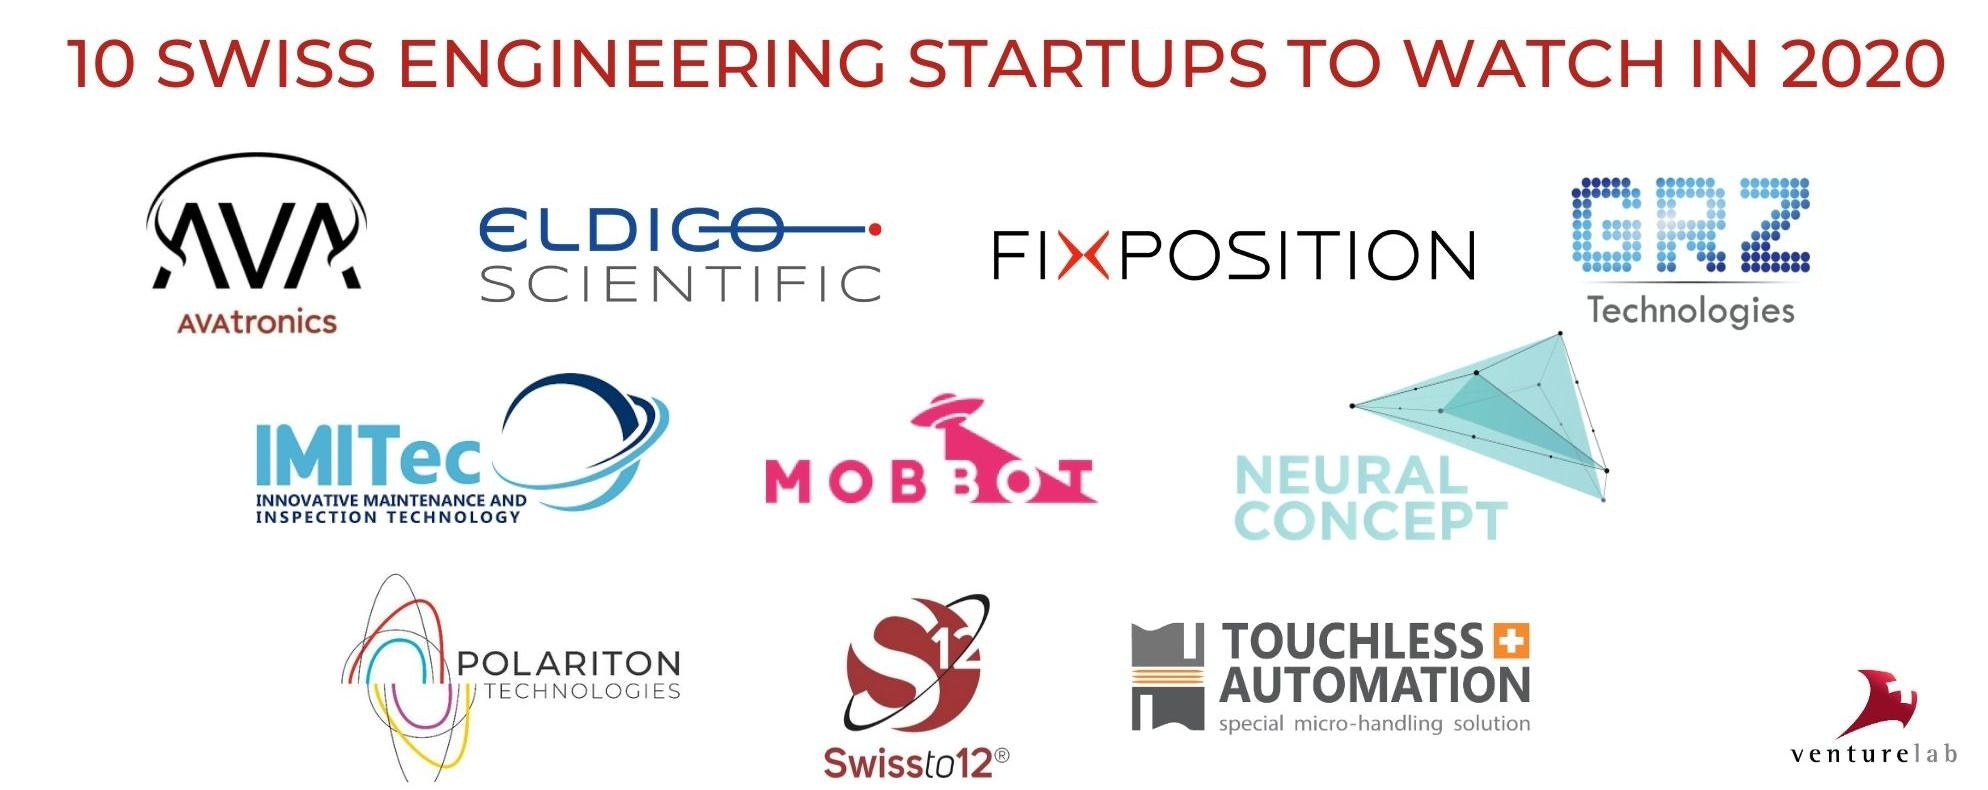 10 Swiss Engineering Startups to Watch in 2020